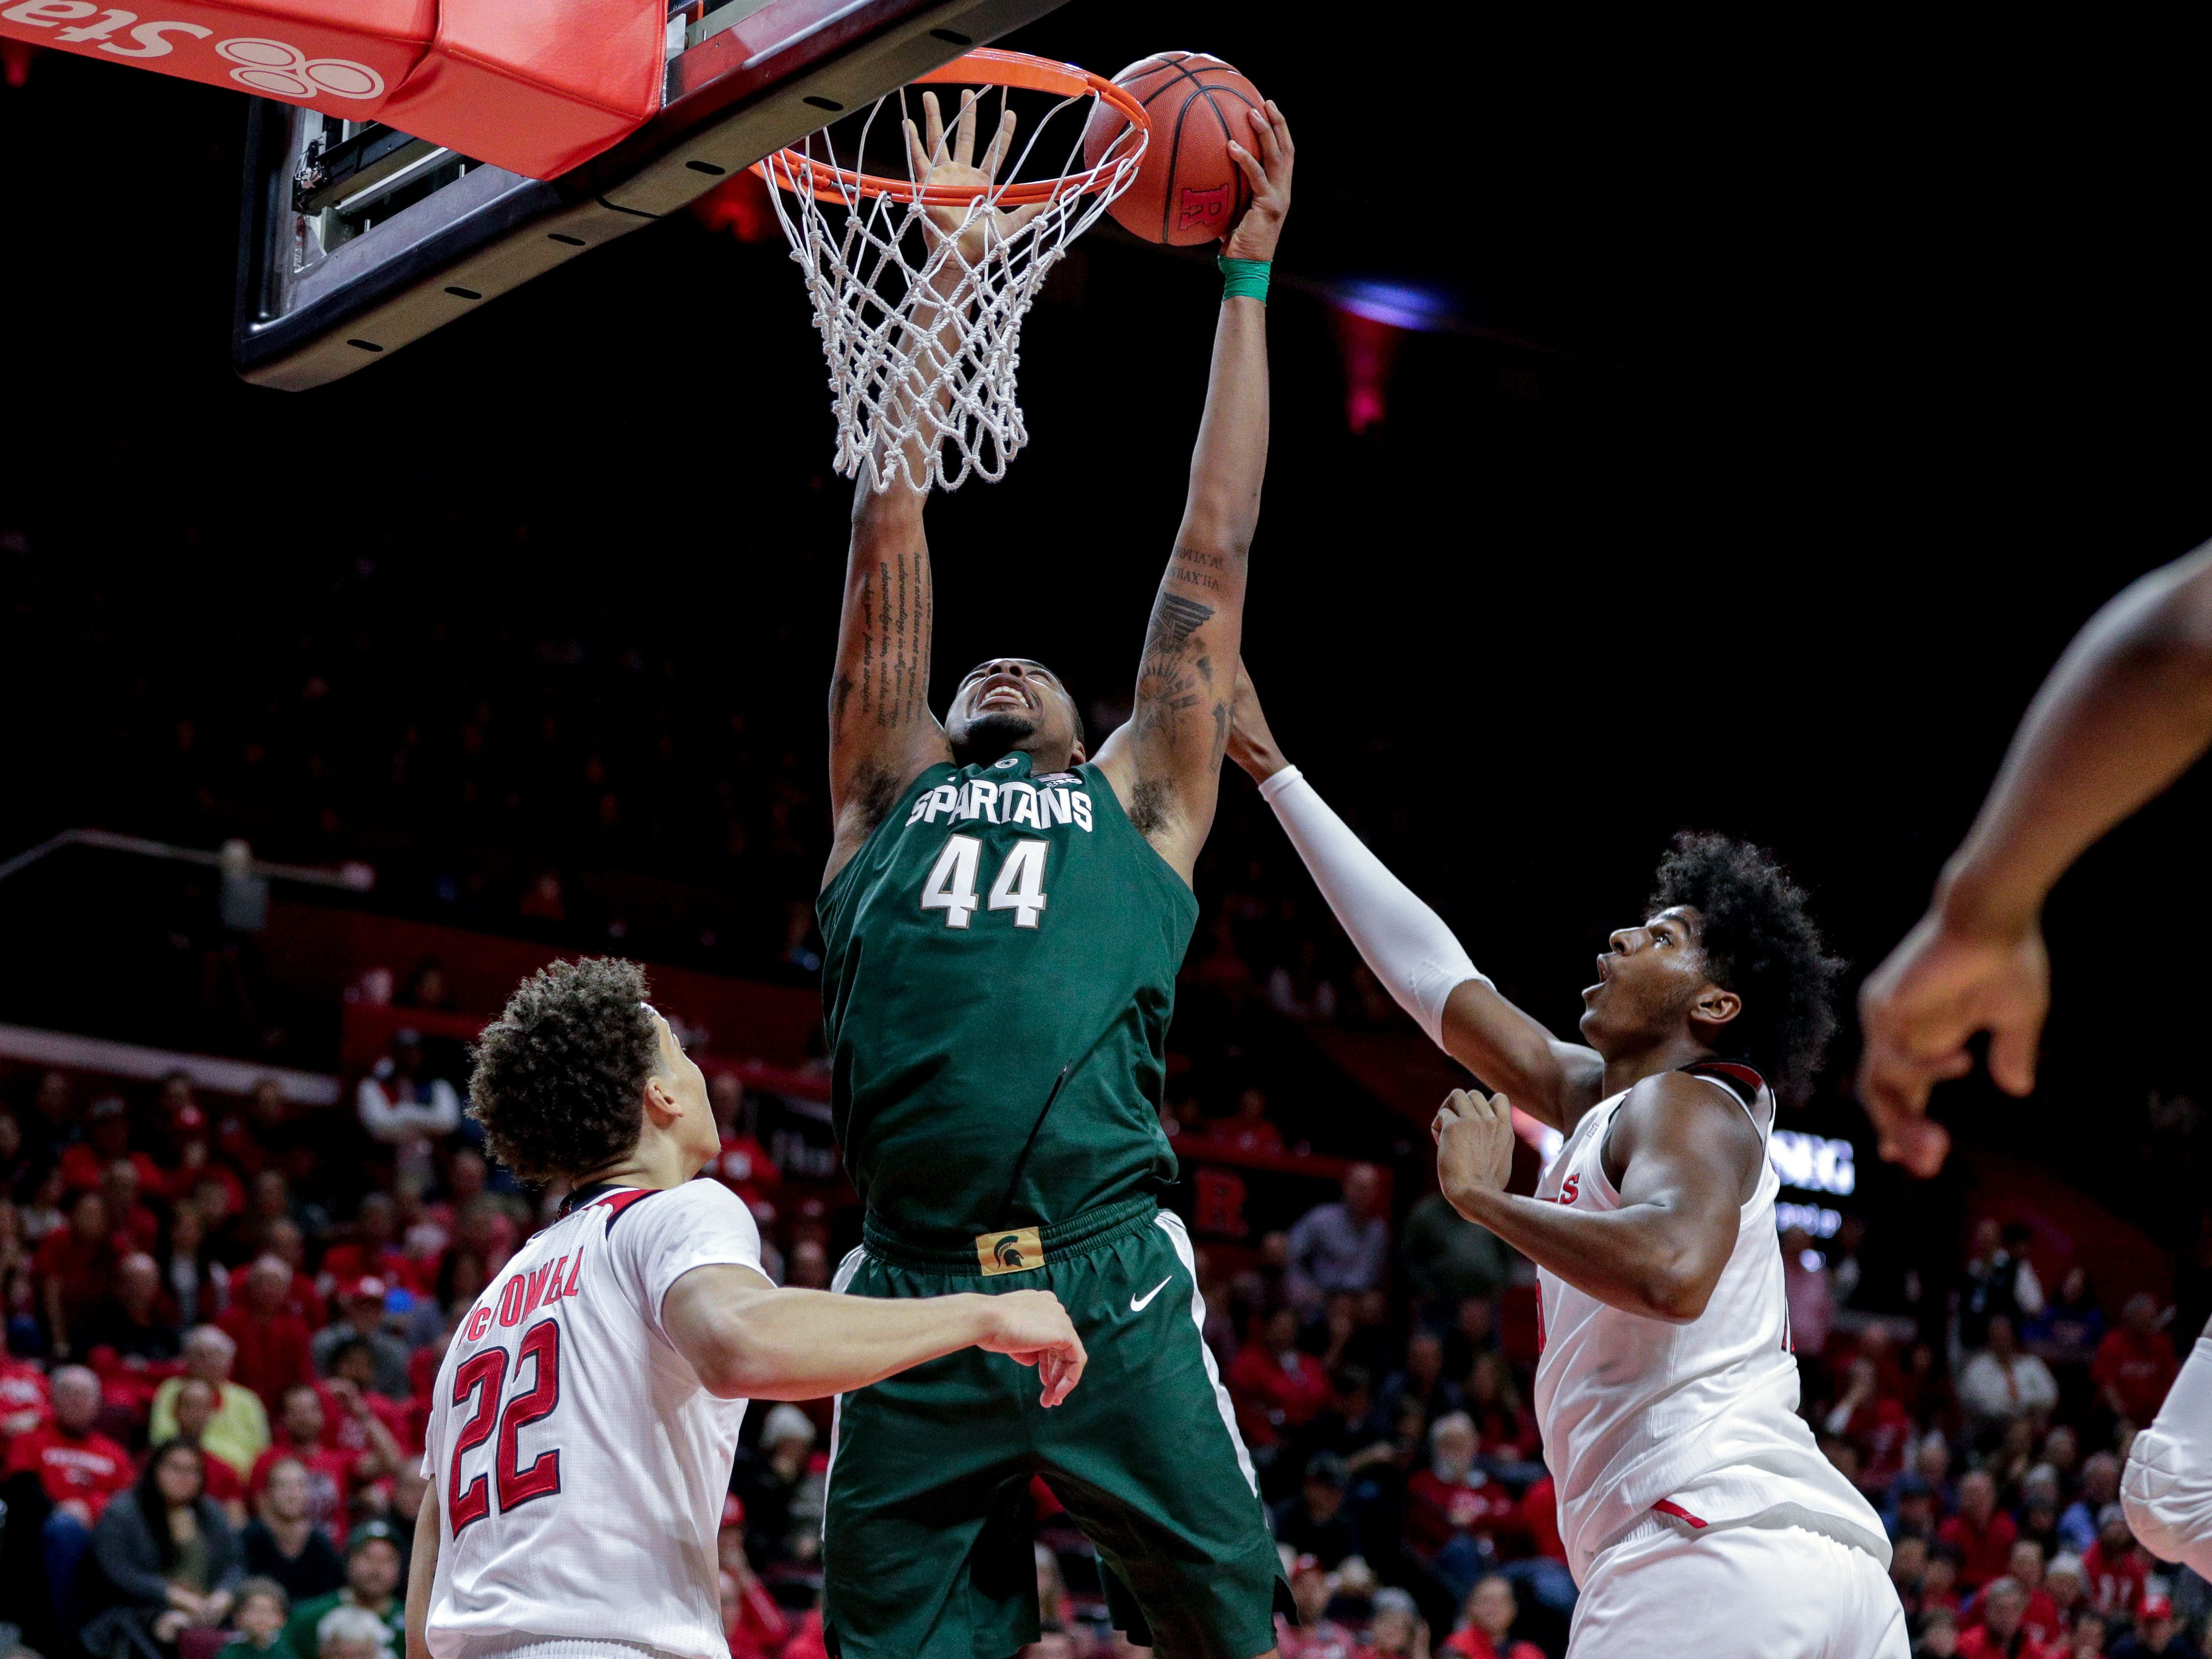 Michigan State Spartans forward Nick Ward (44) shoots the ball over Rutgers Scarlet Knights guard Caleb McConnell (22) and center Myles Johnson (15) during the first half at Rutgers Athletic Center (RAC).